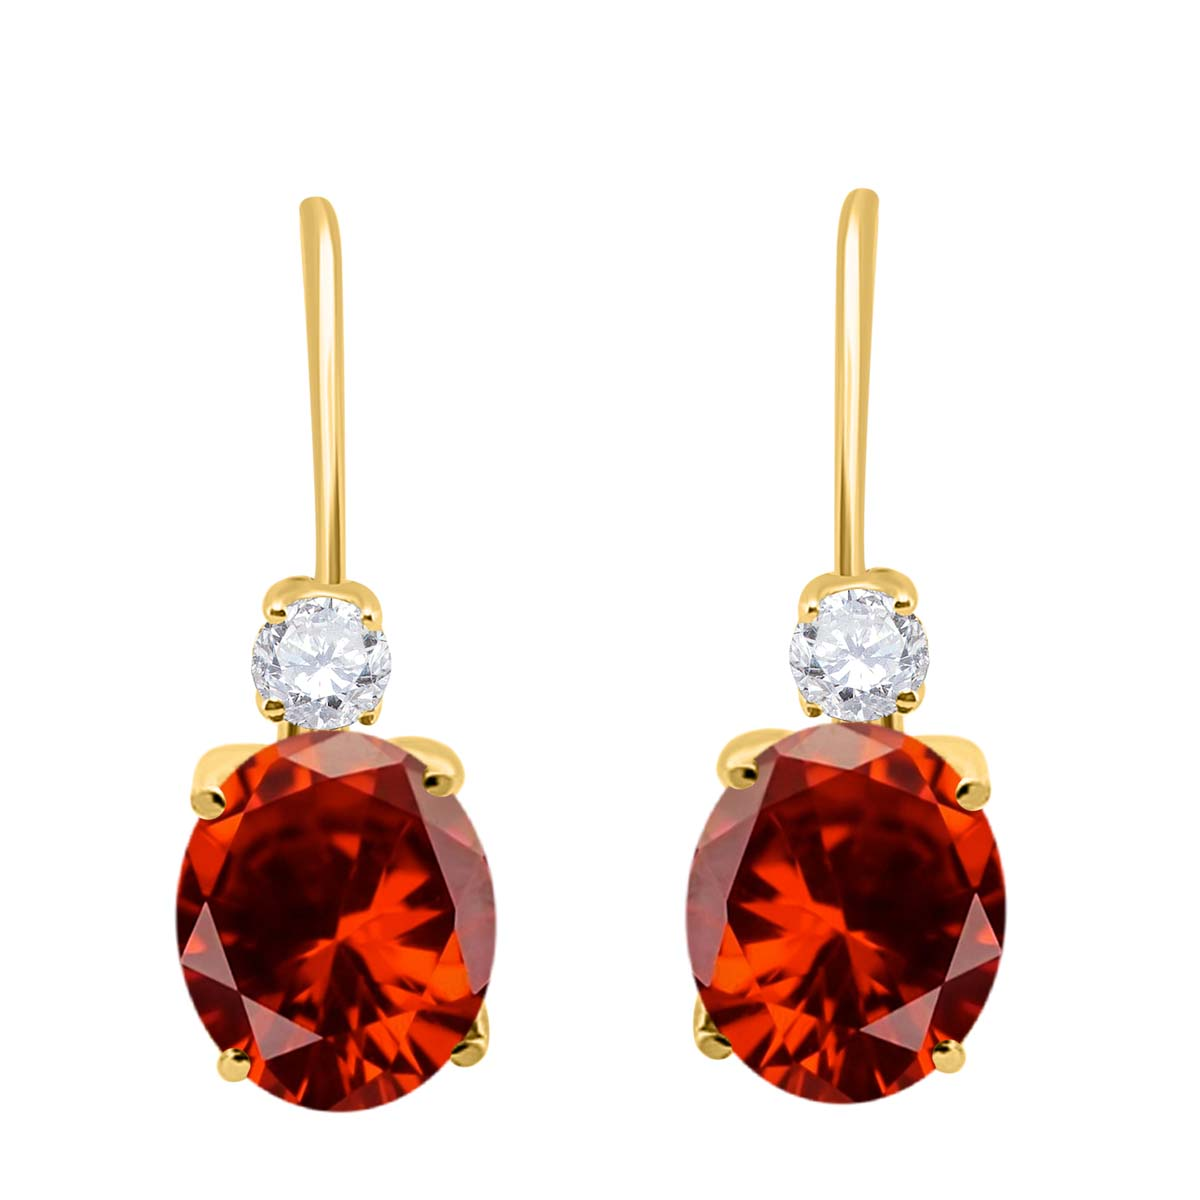 2.7 Carat 8×6 Gemstone And Diamond Leverback Earrings sets for girls or Women Garnet 14K Yellow Gold 4 Prong-Setting Oval adultsthis is the lovely gift for anniversary